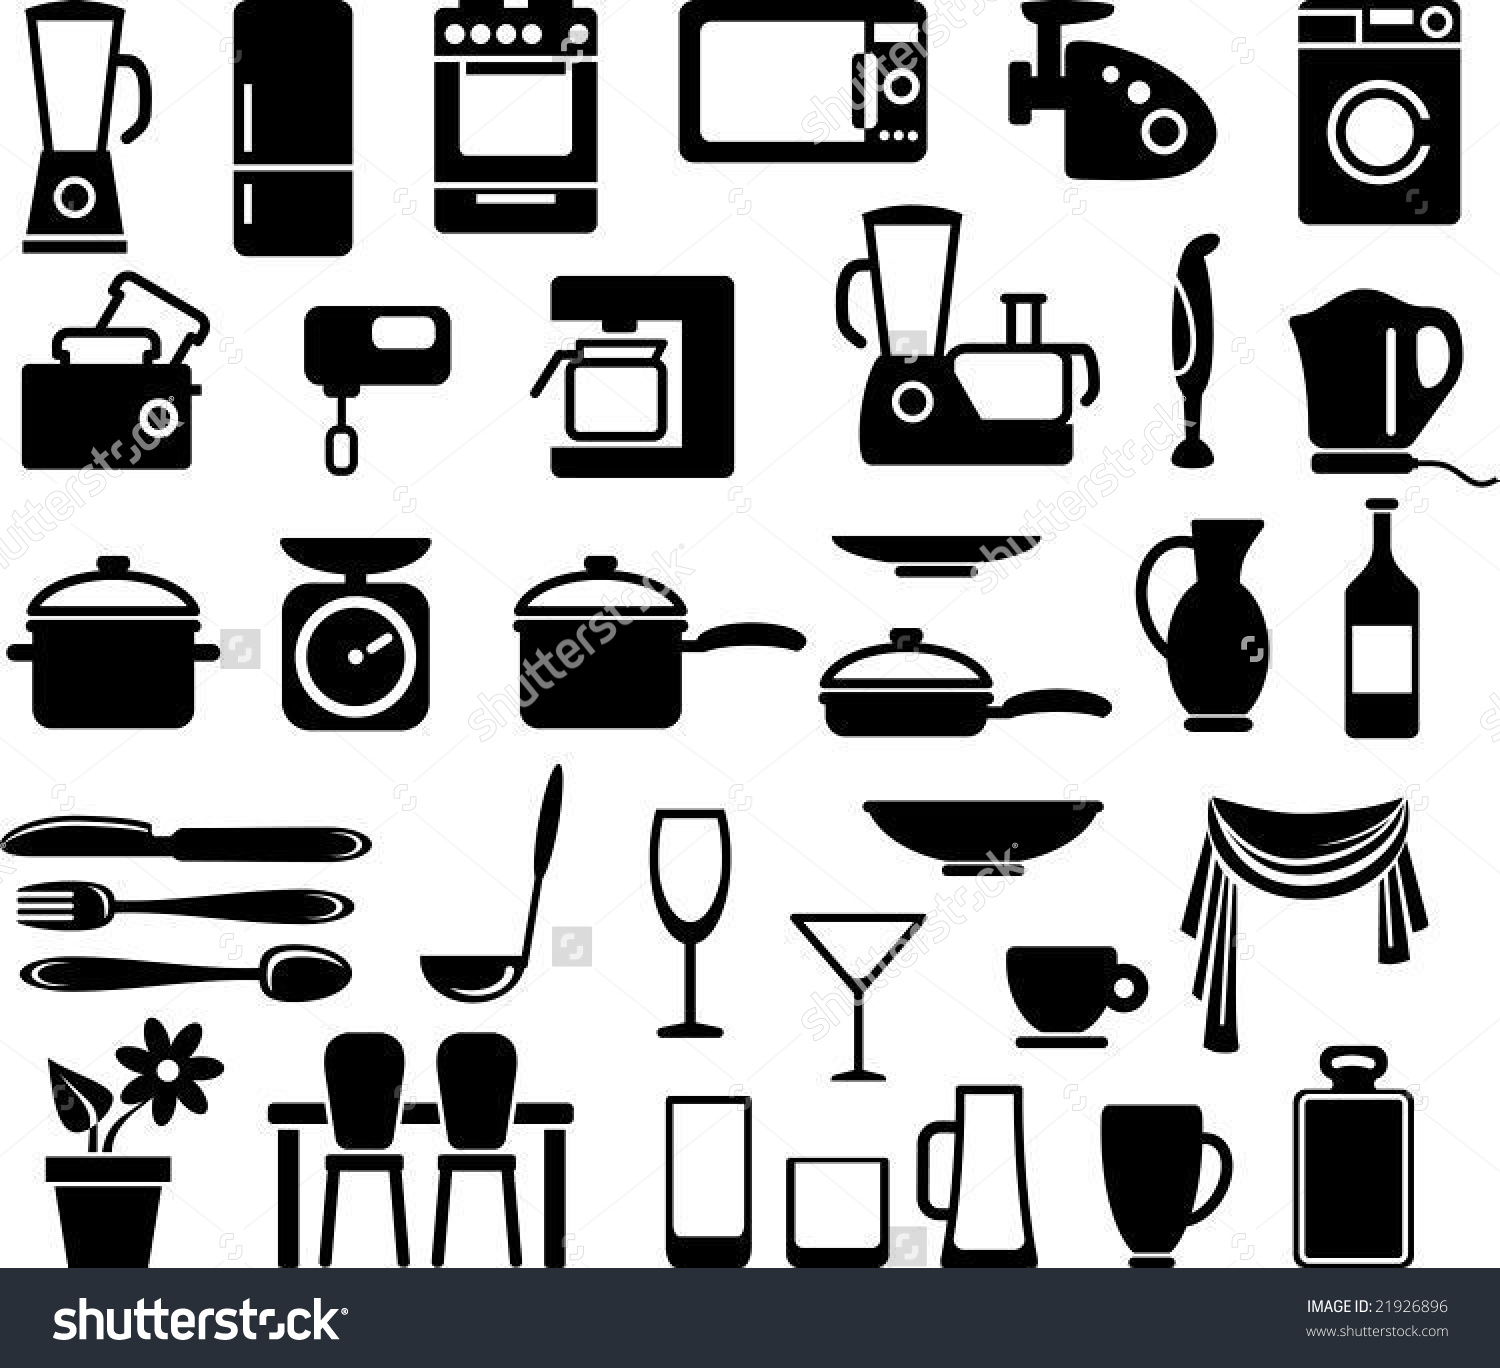 Kitchen Ware Home Appliances Icon Set Stock Vector 21926896.